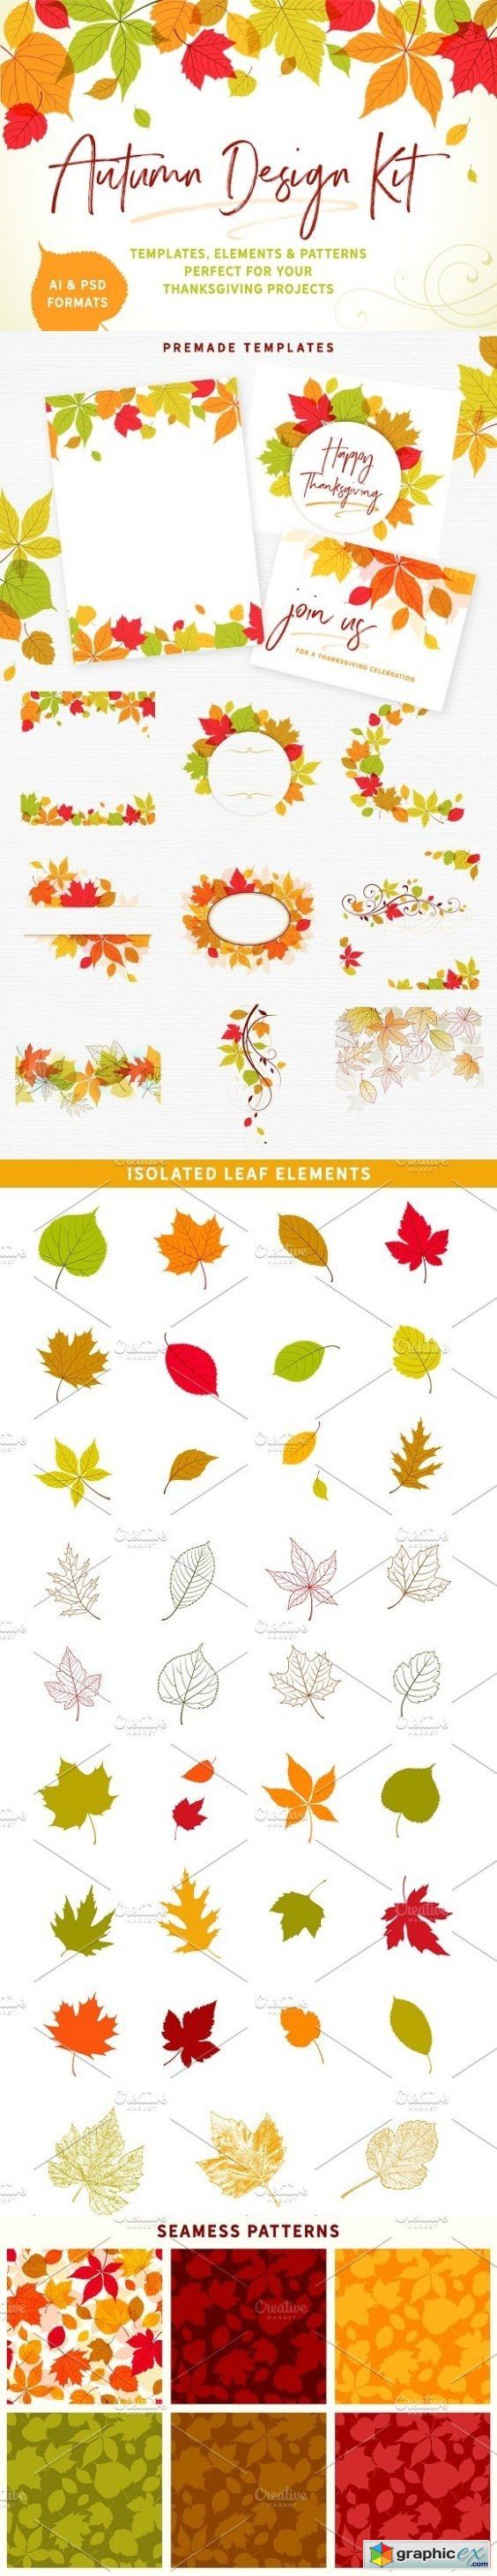 Autumn Design Kit